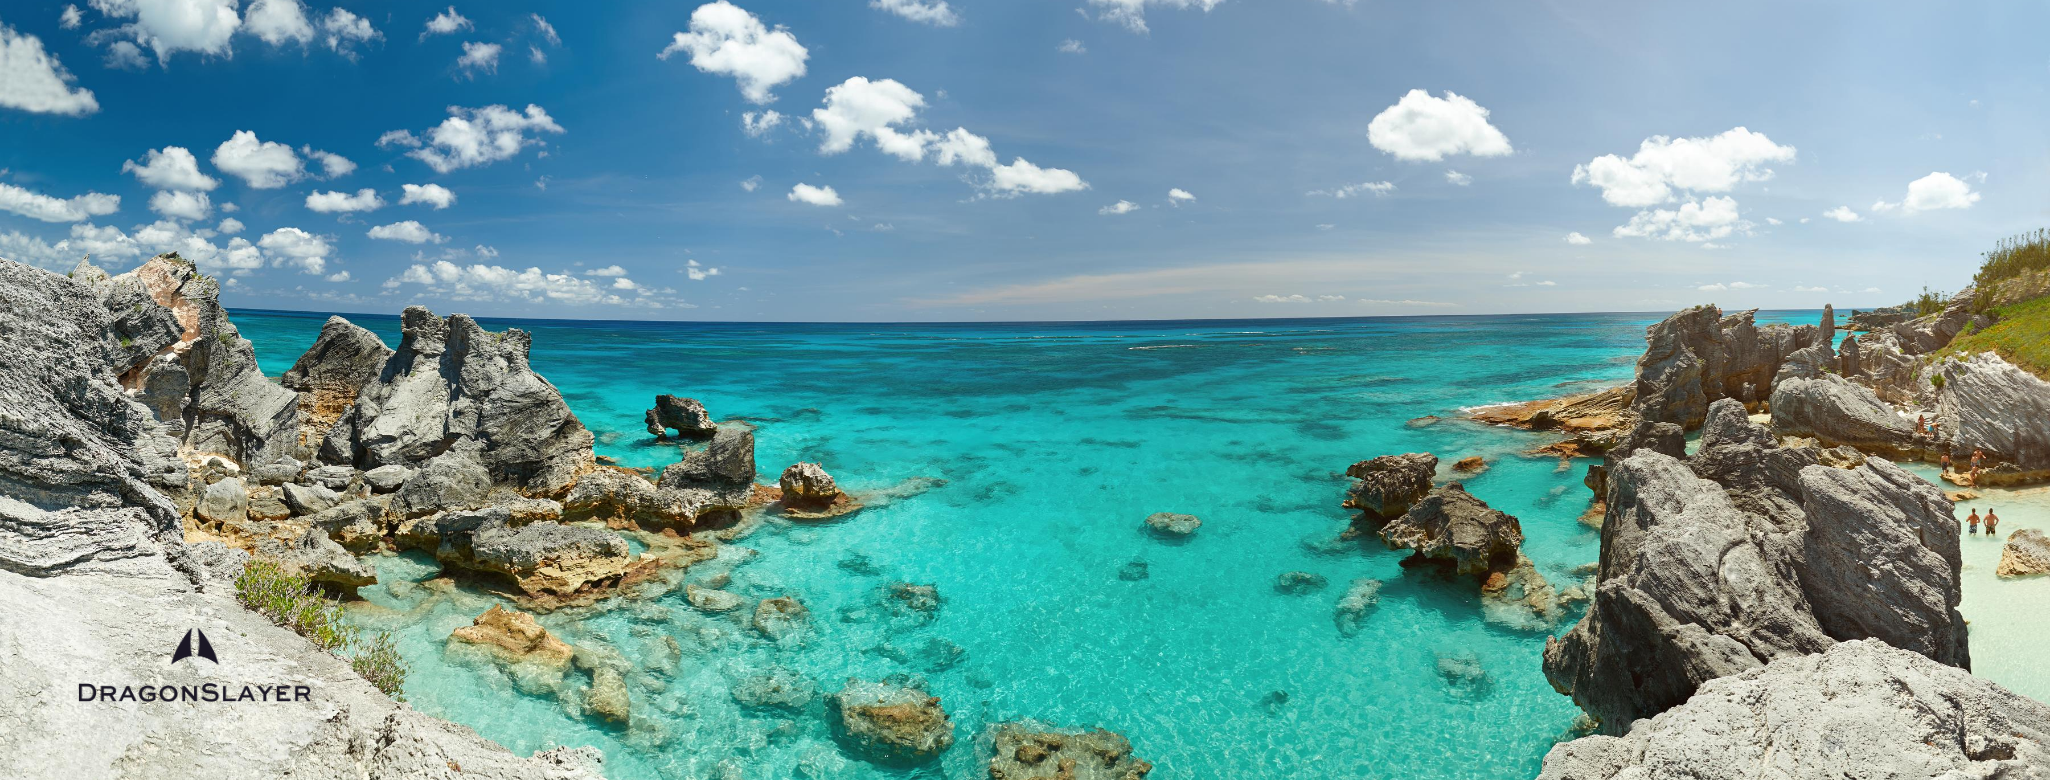 It may be safer to travel to Bermuda than the grocery store